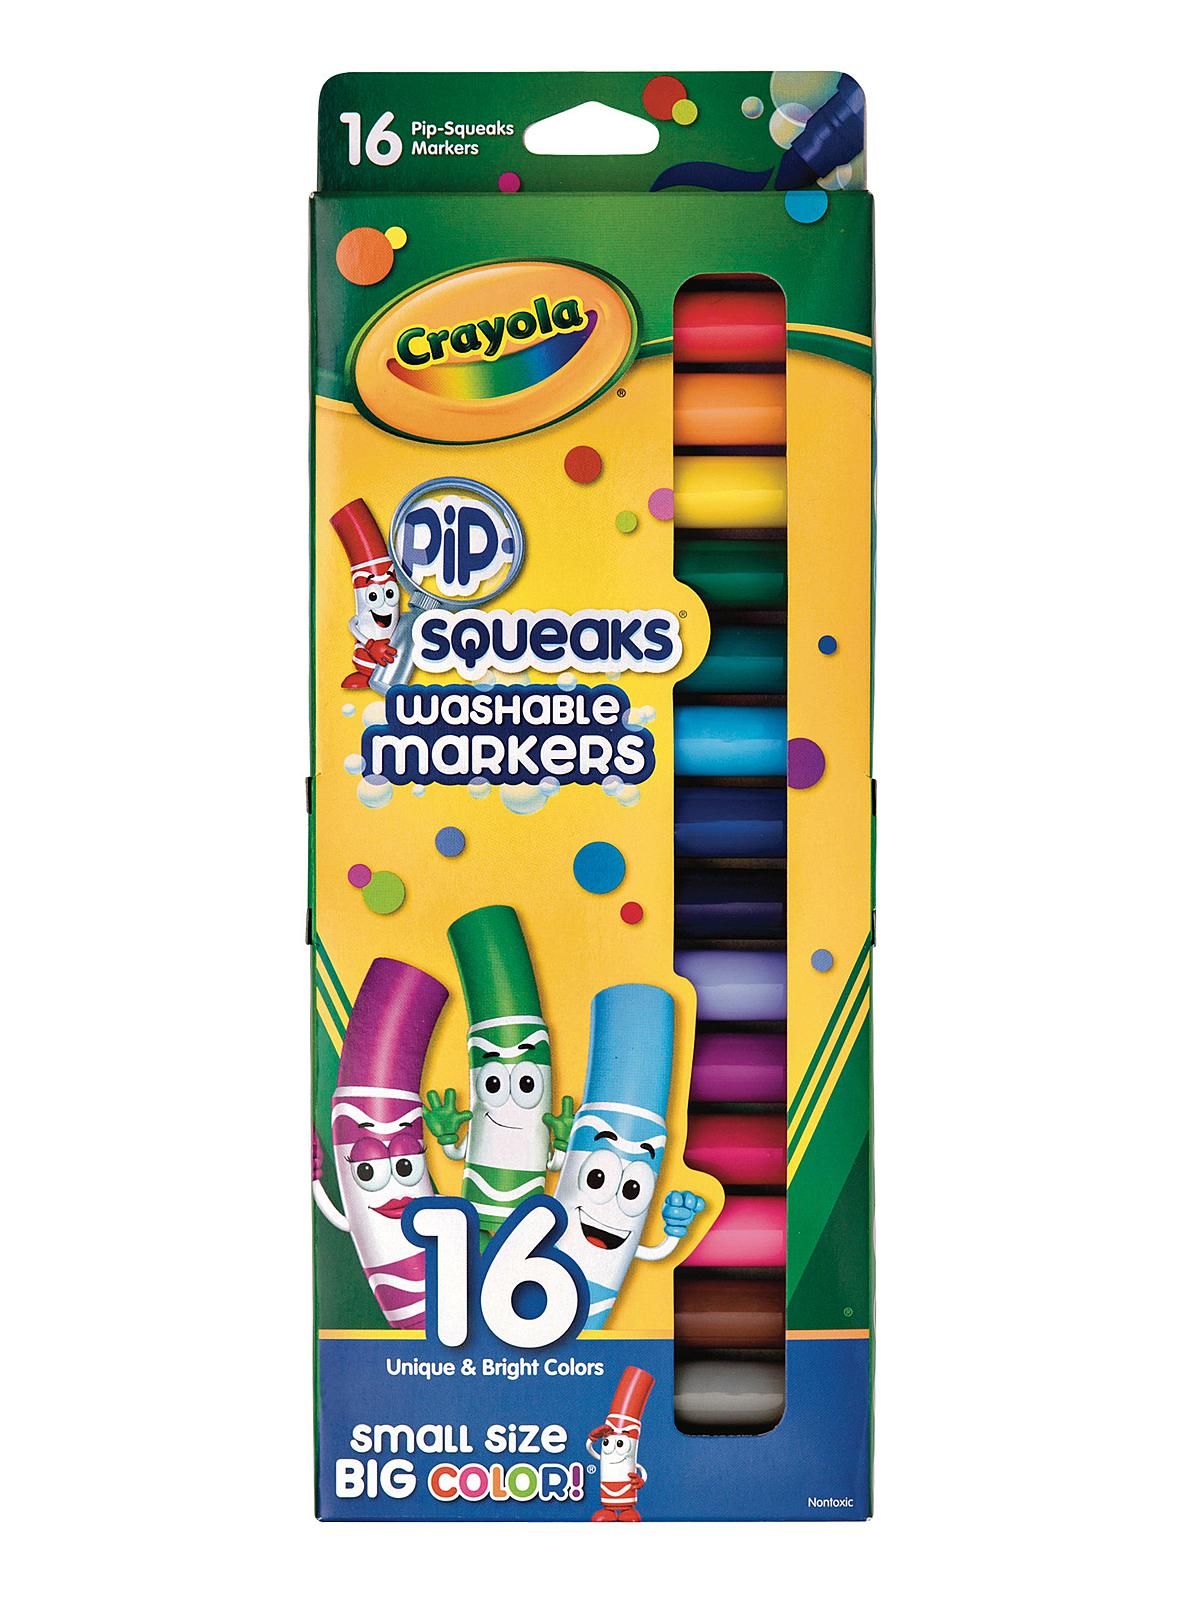 Pip-Squeaks Markers